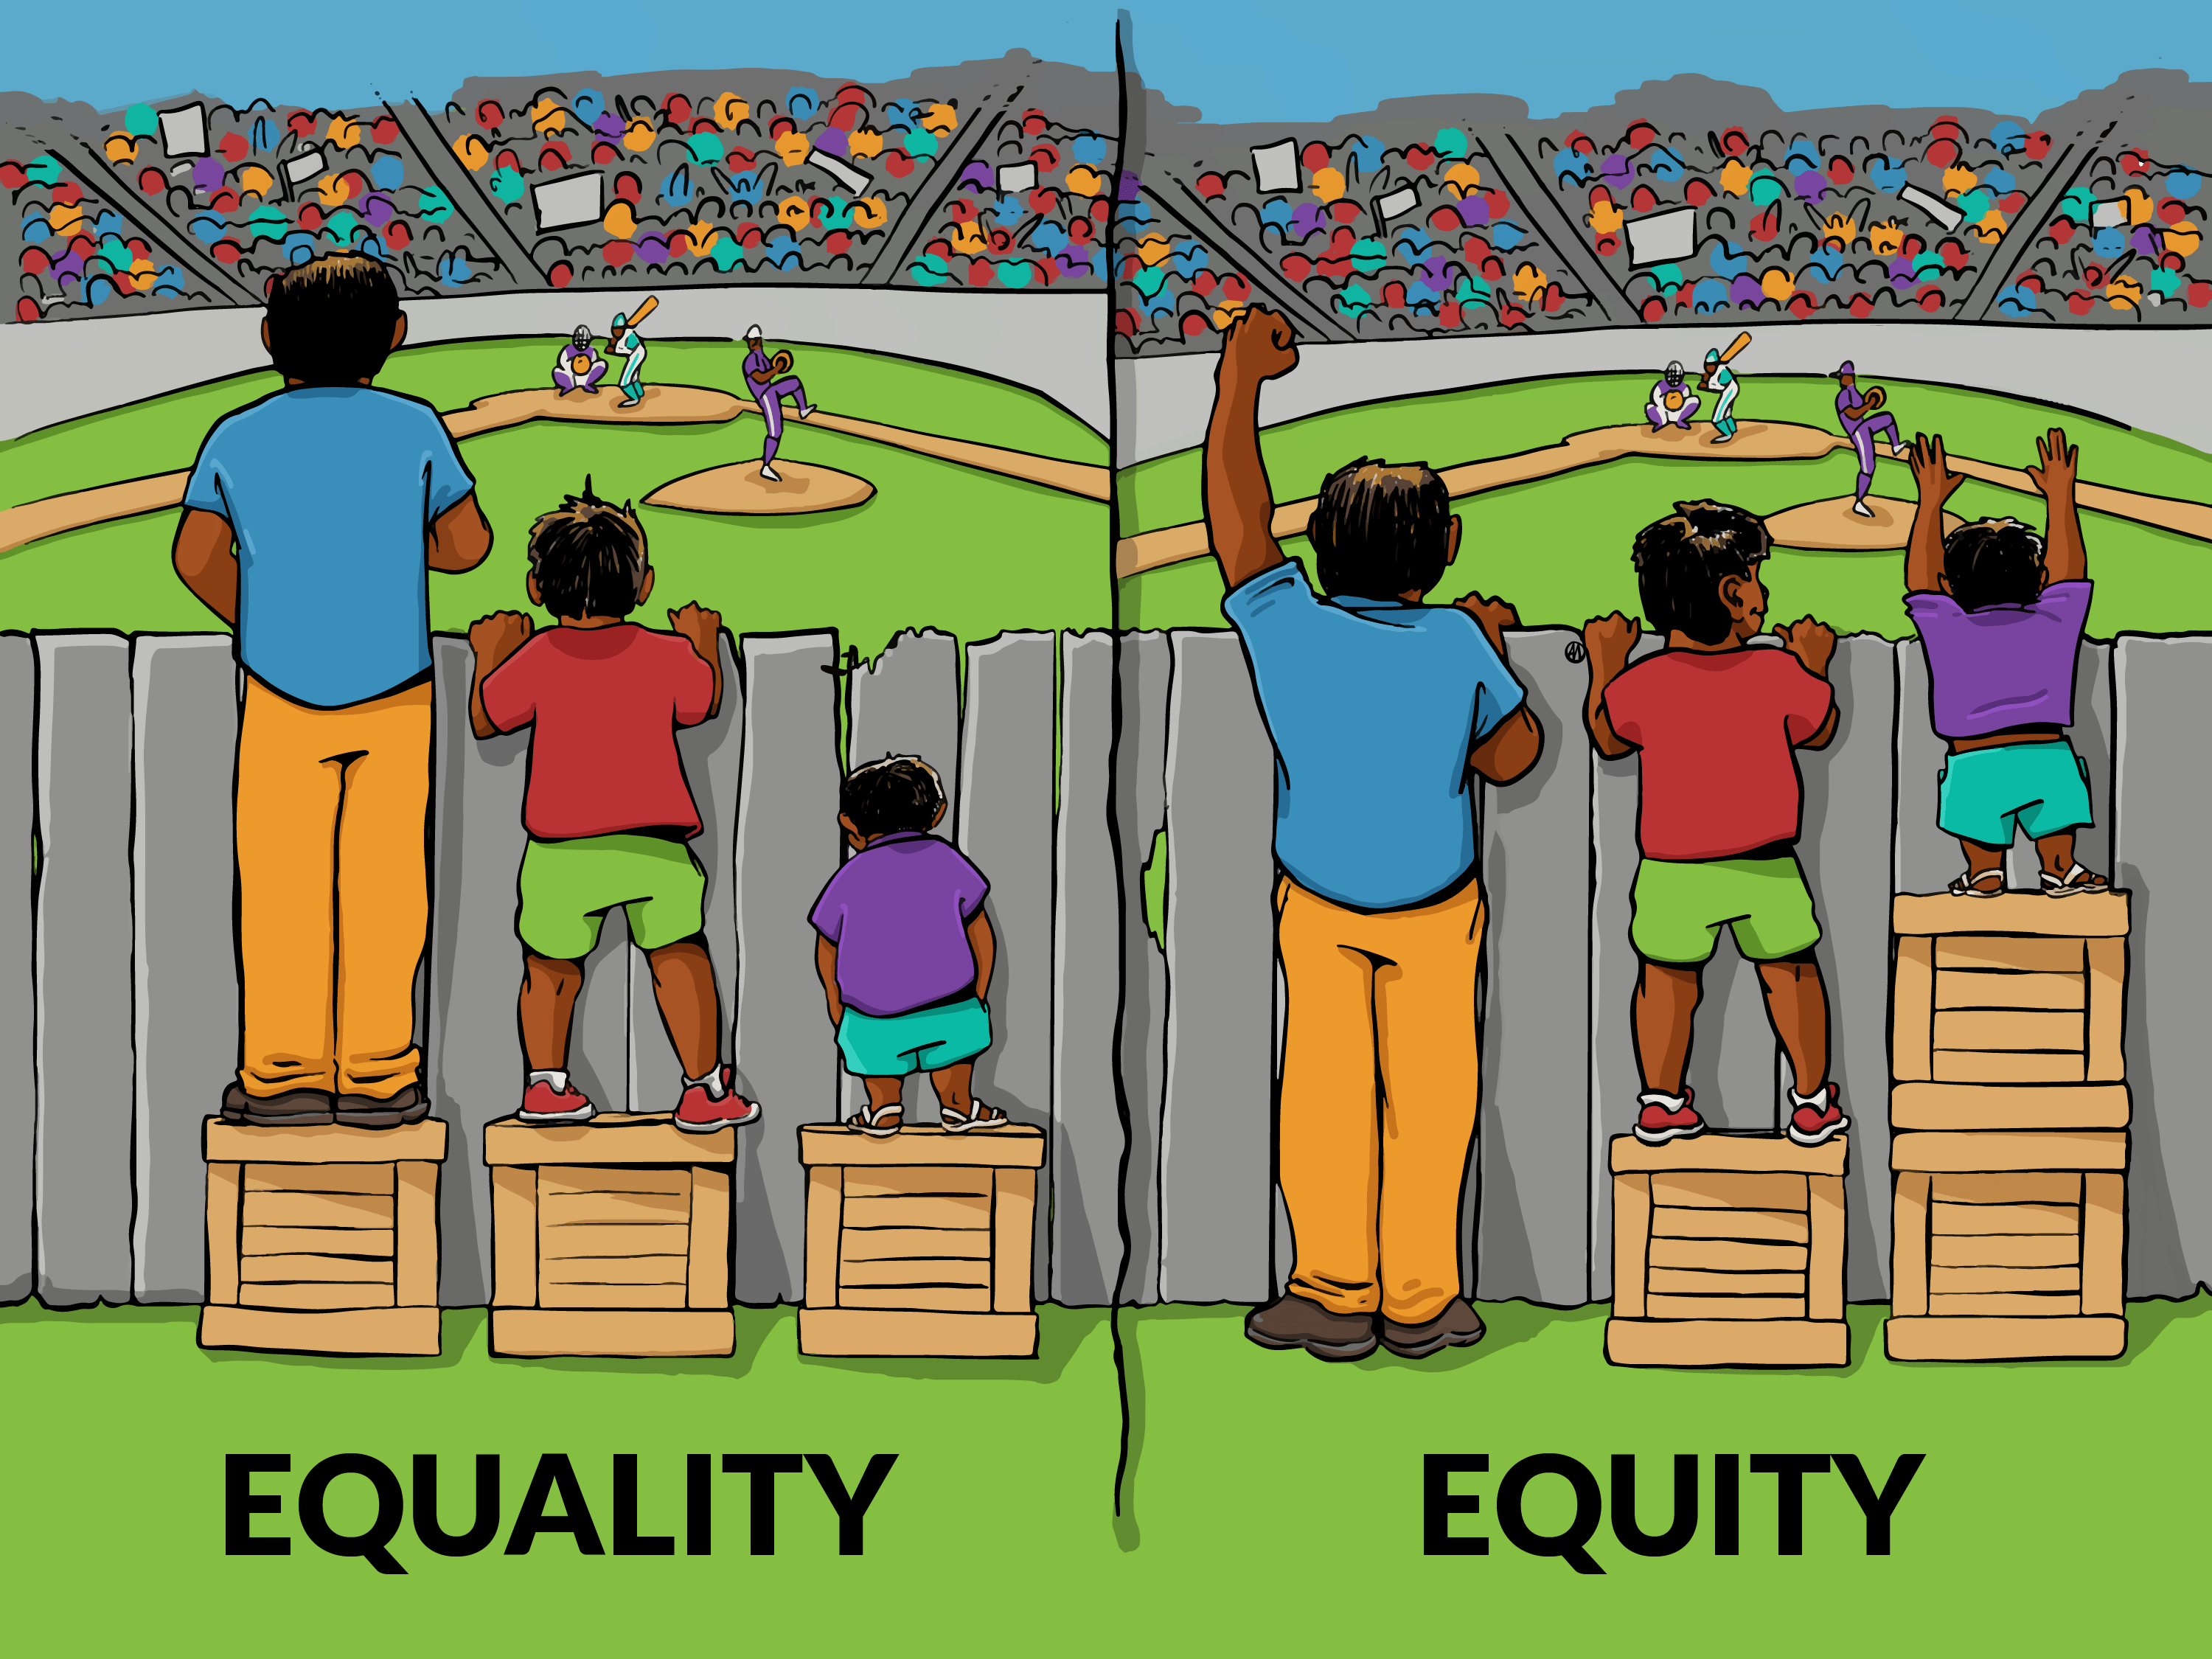 equality v equity.png